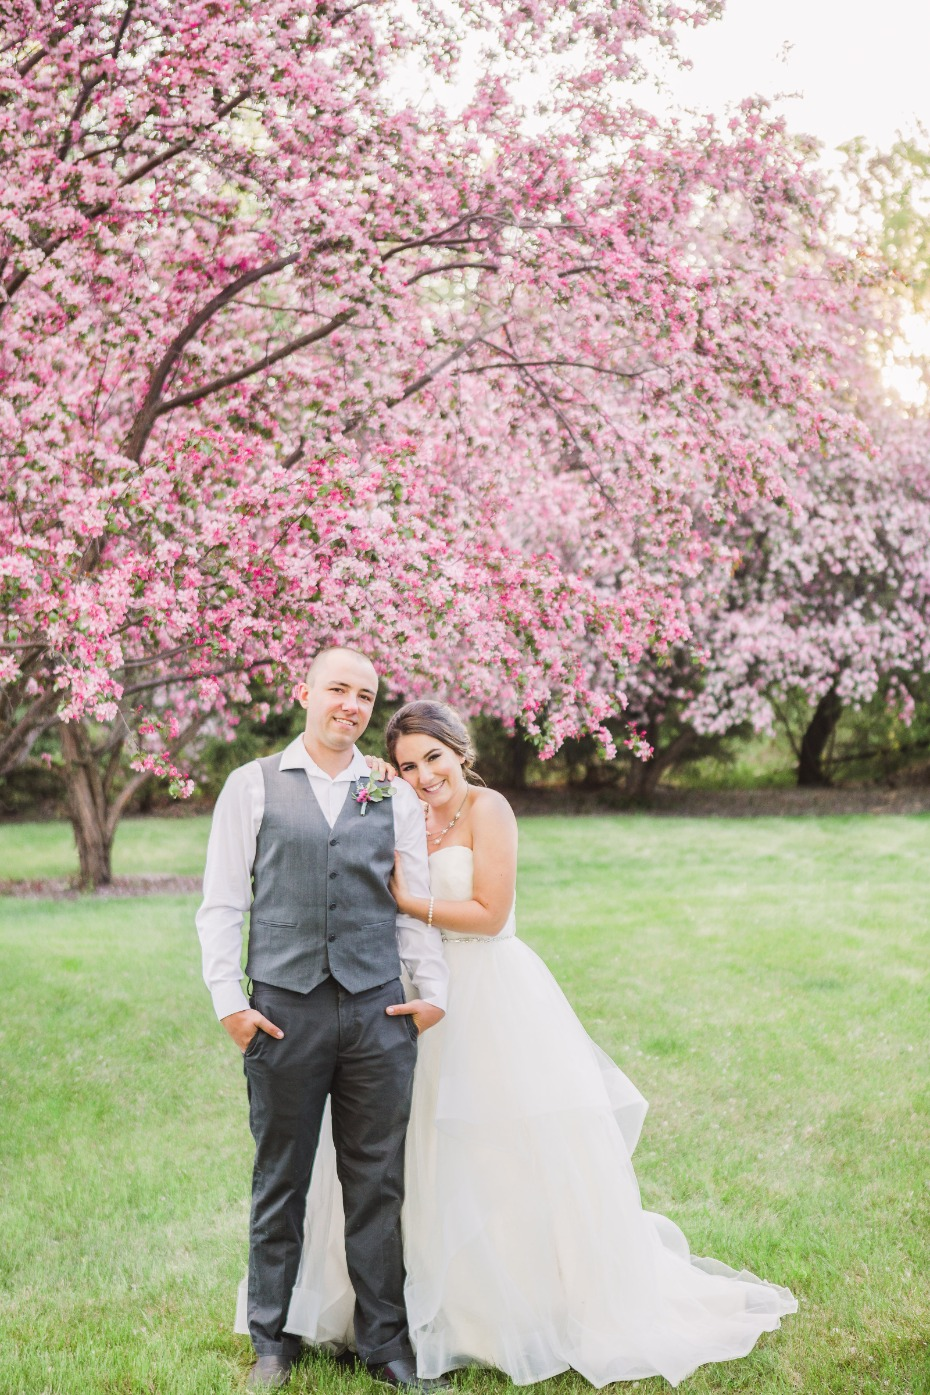 Vintage cherry blossom wedding inspiration